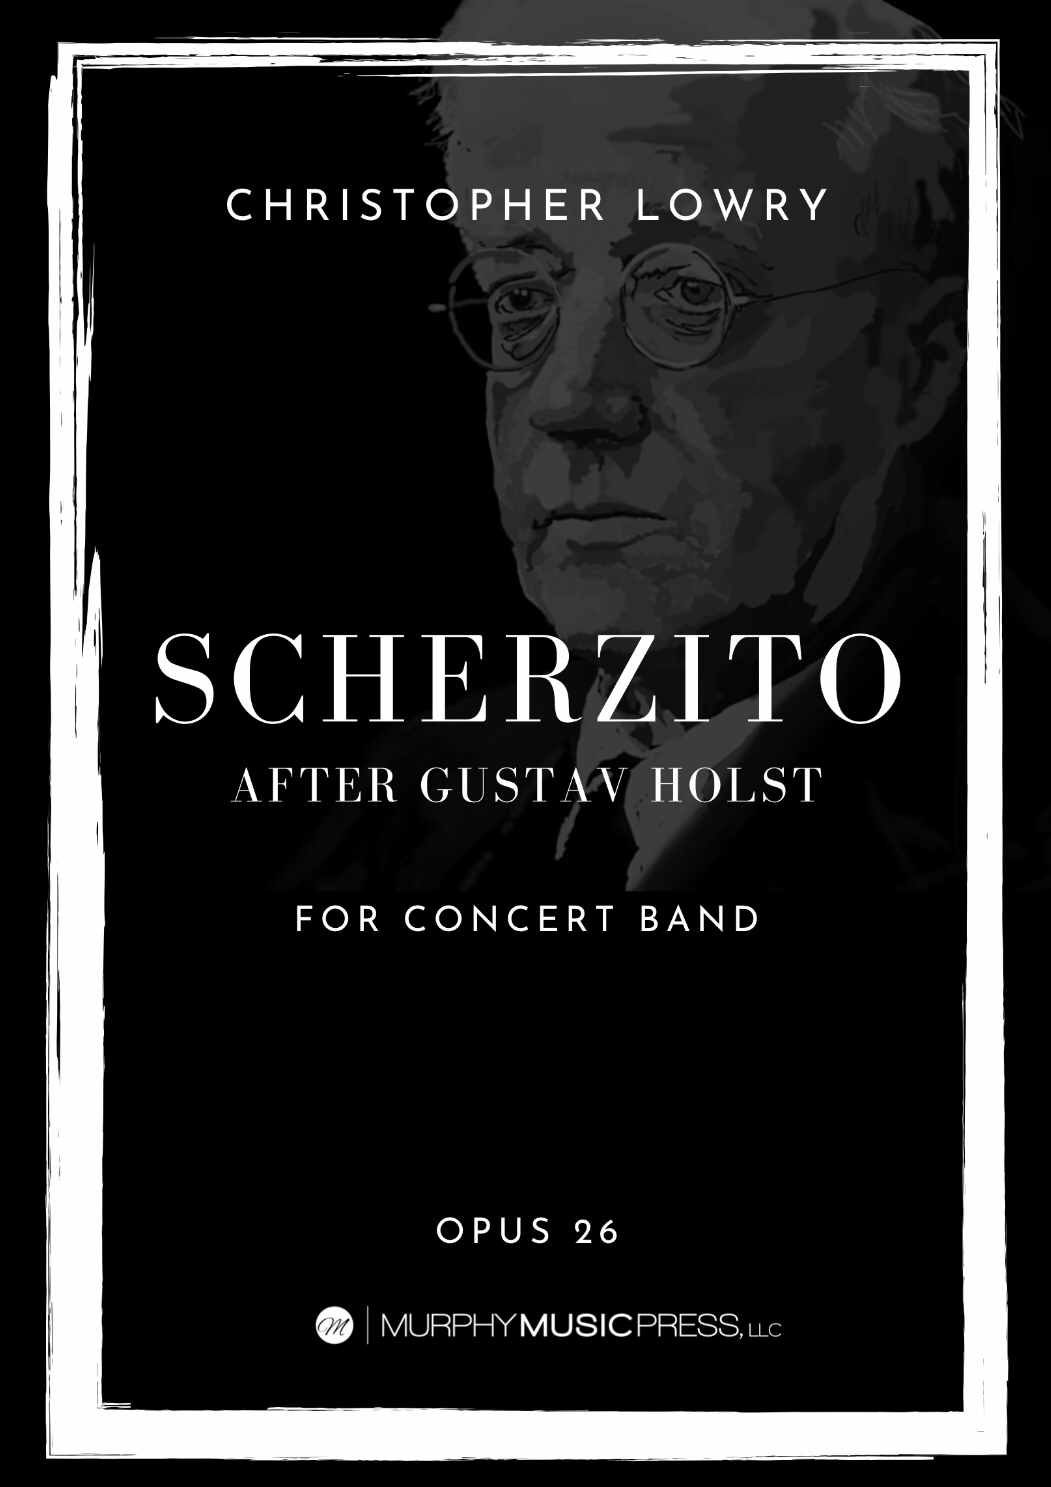 Scherzito After Gustav Holst by Christopher Lowry